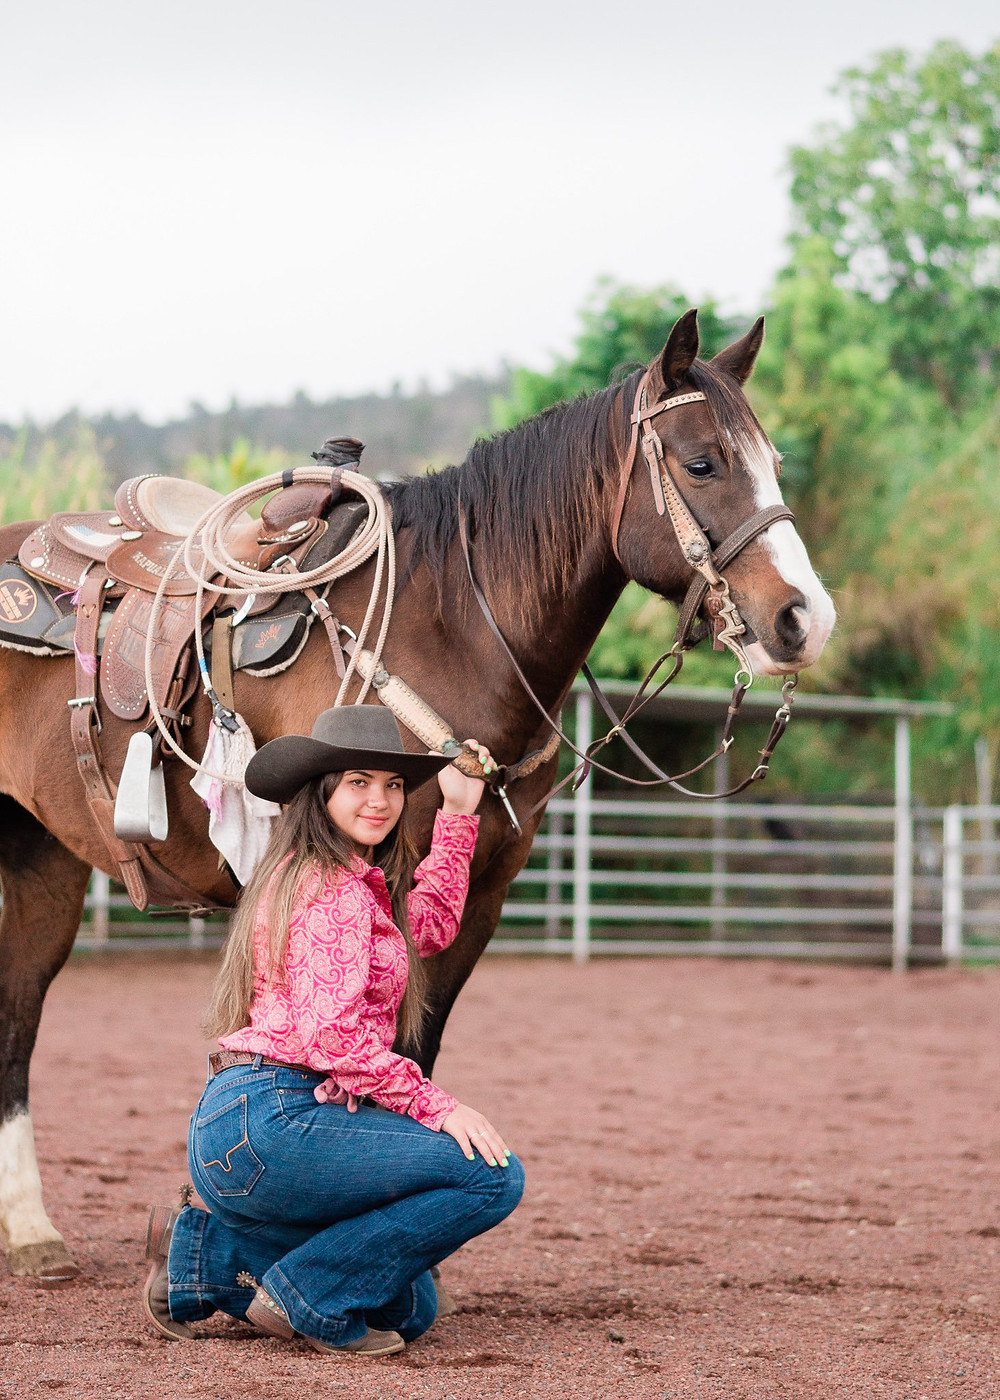 a Hawaiian girl with long dark hair, wearing a pink shirt and Kimes jeans, kneeling next to her horse